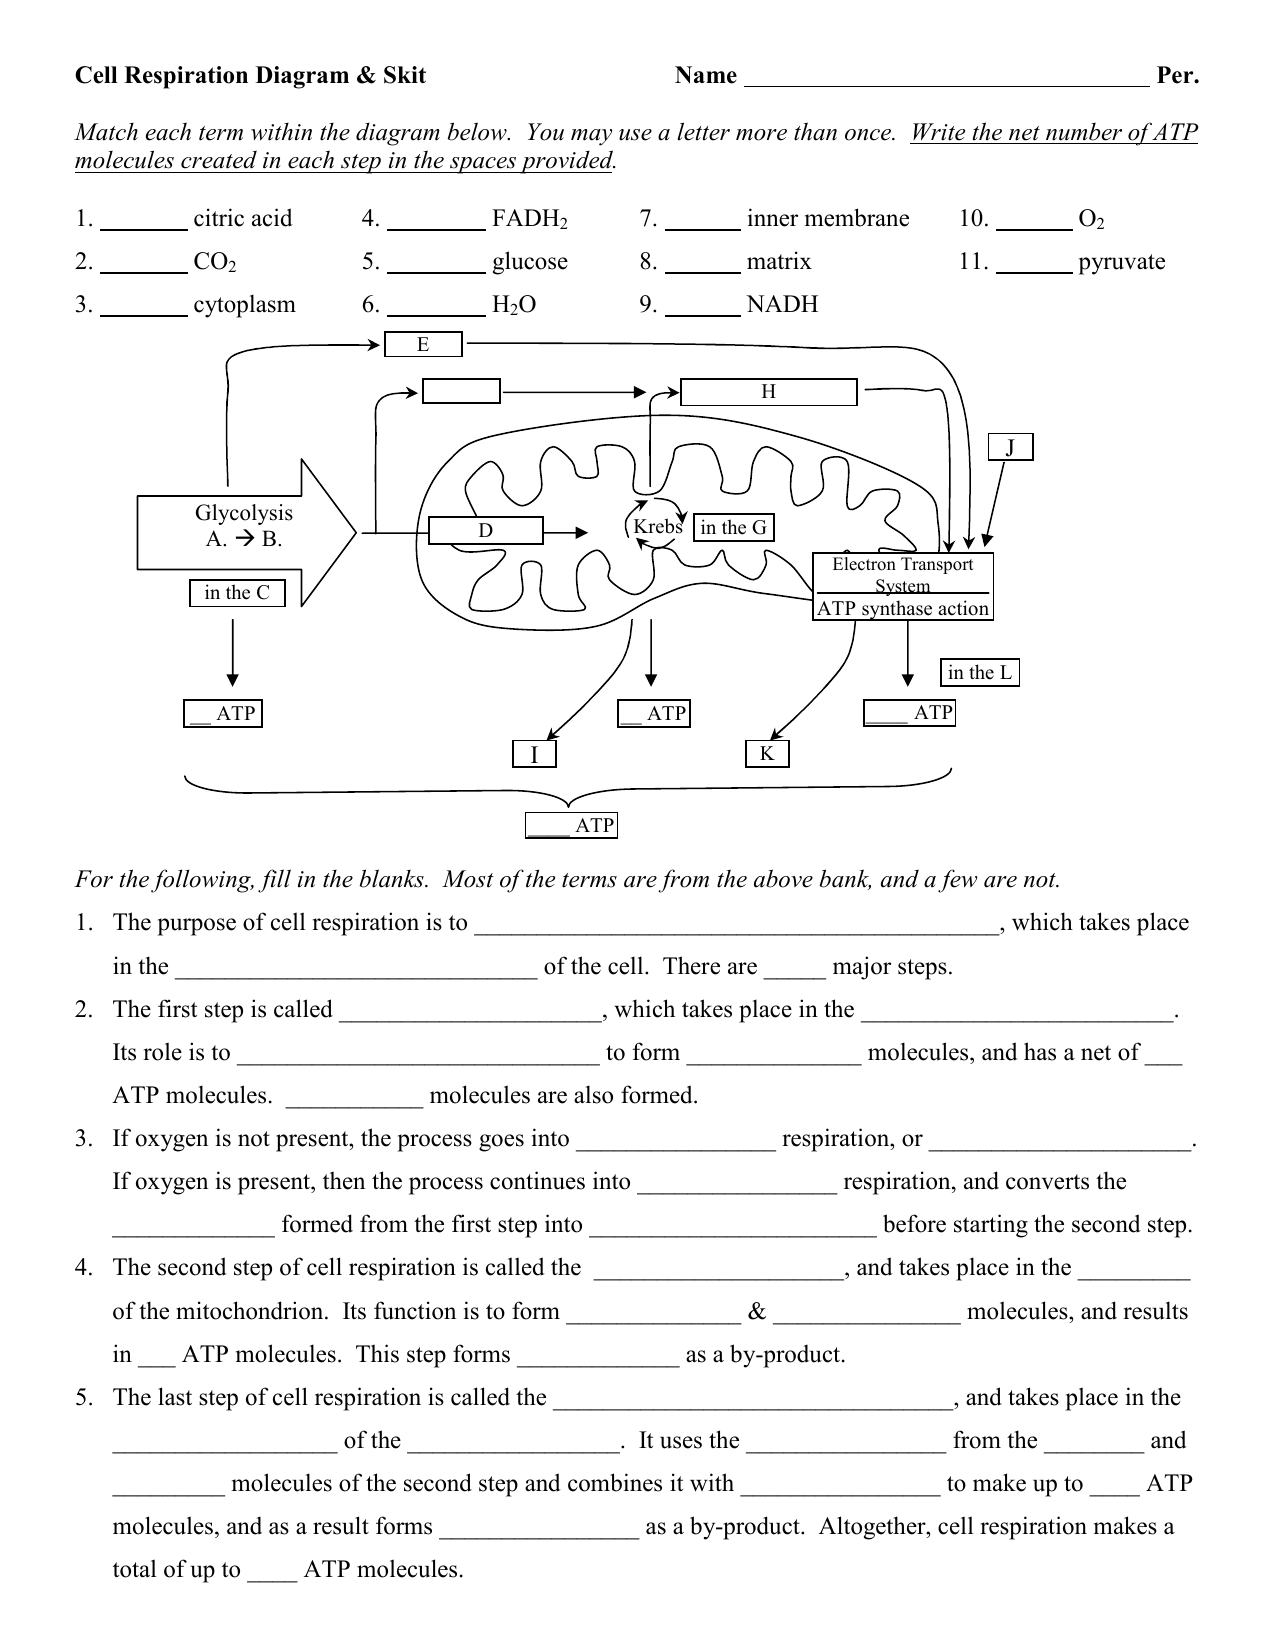 Photosynthesis And Cellular Respiration Diagram Worksheet